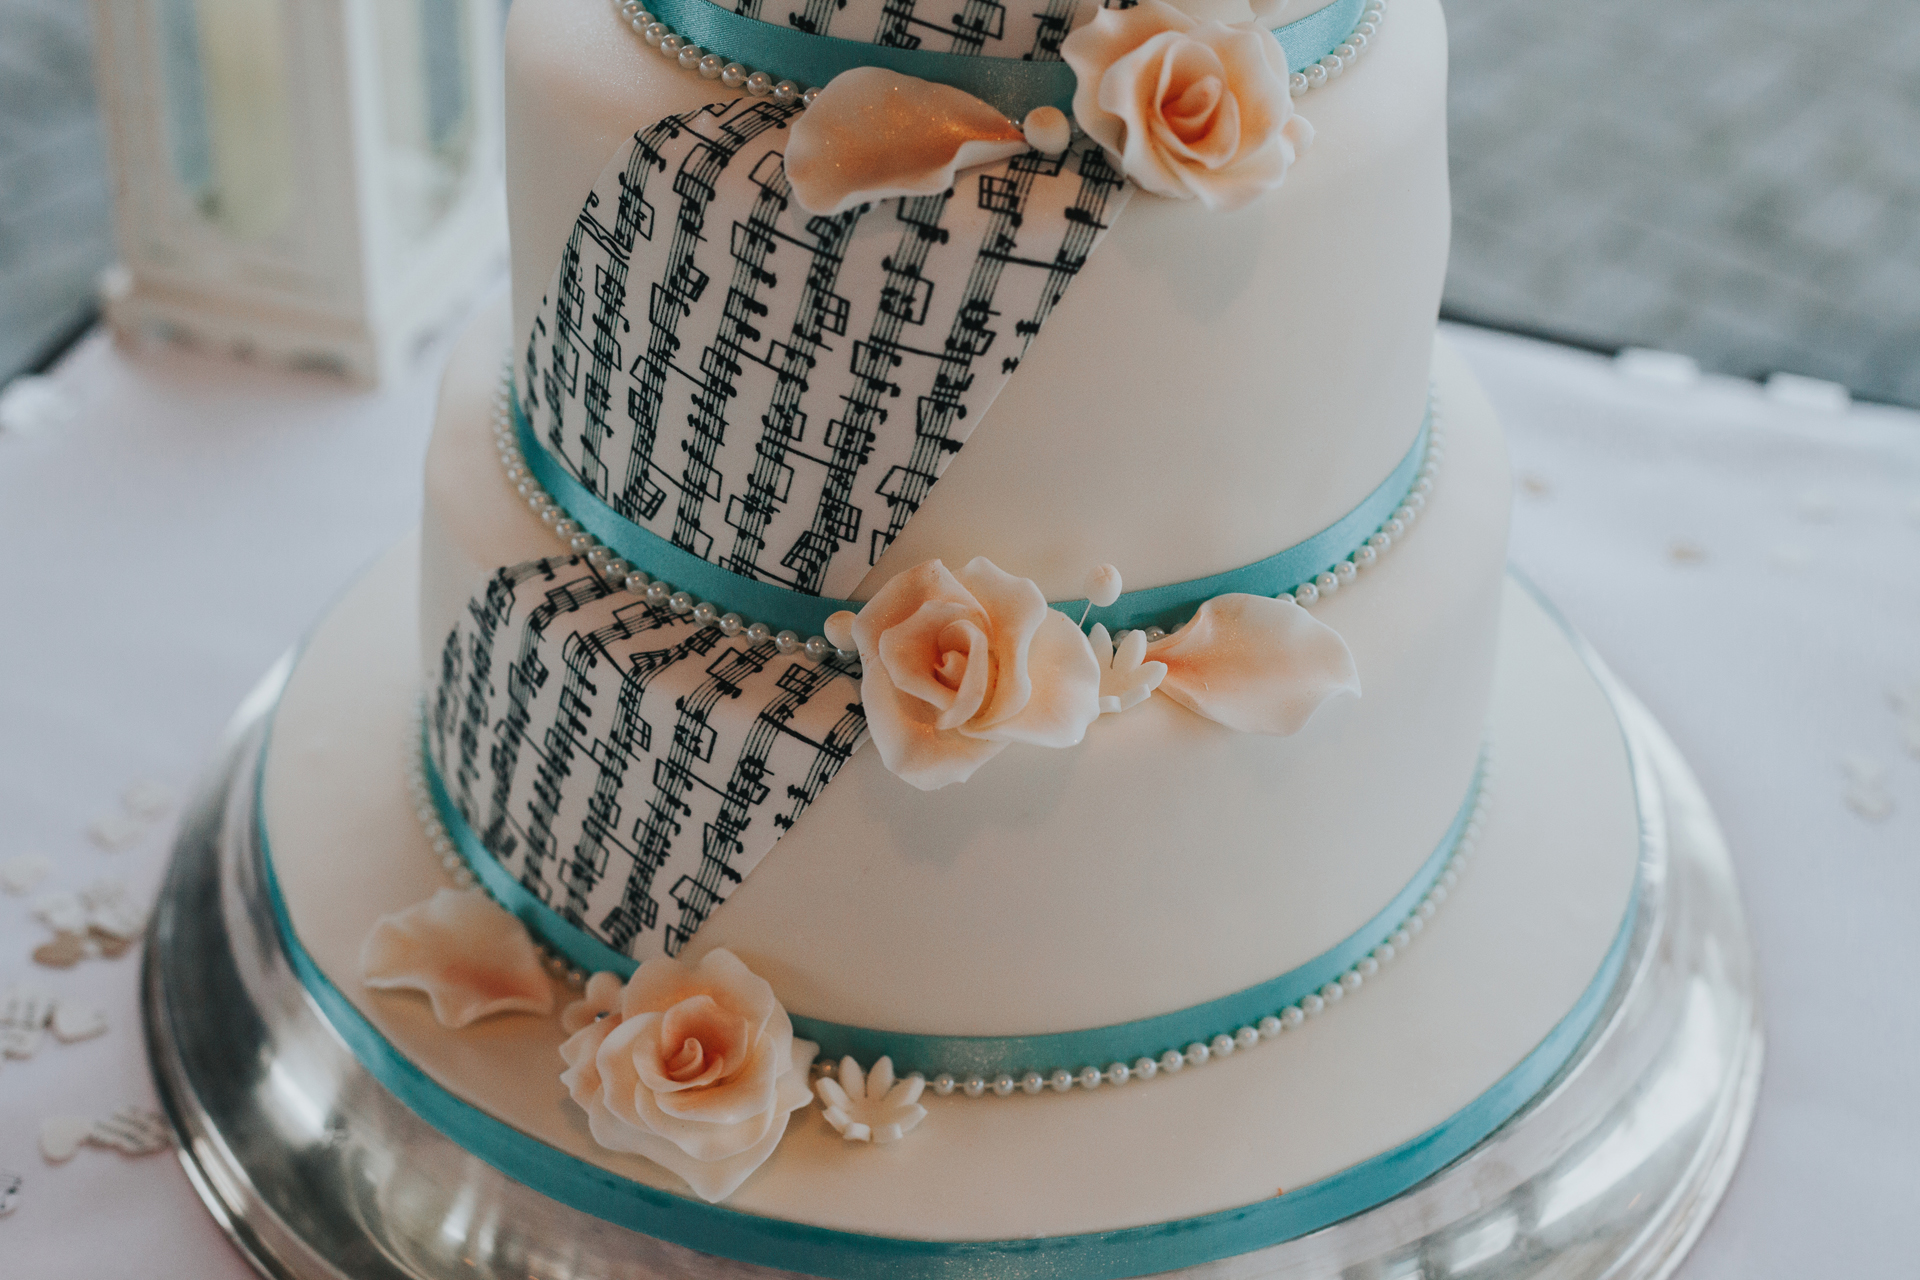 Wedding cake with sheet music and peach rose detail.